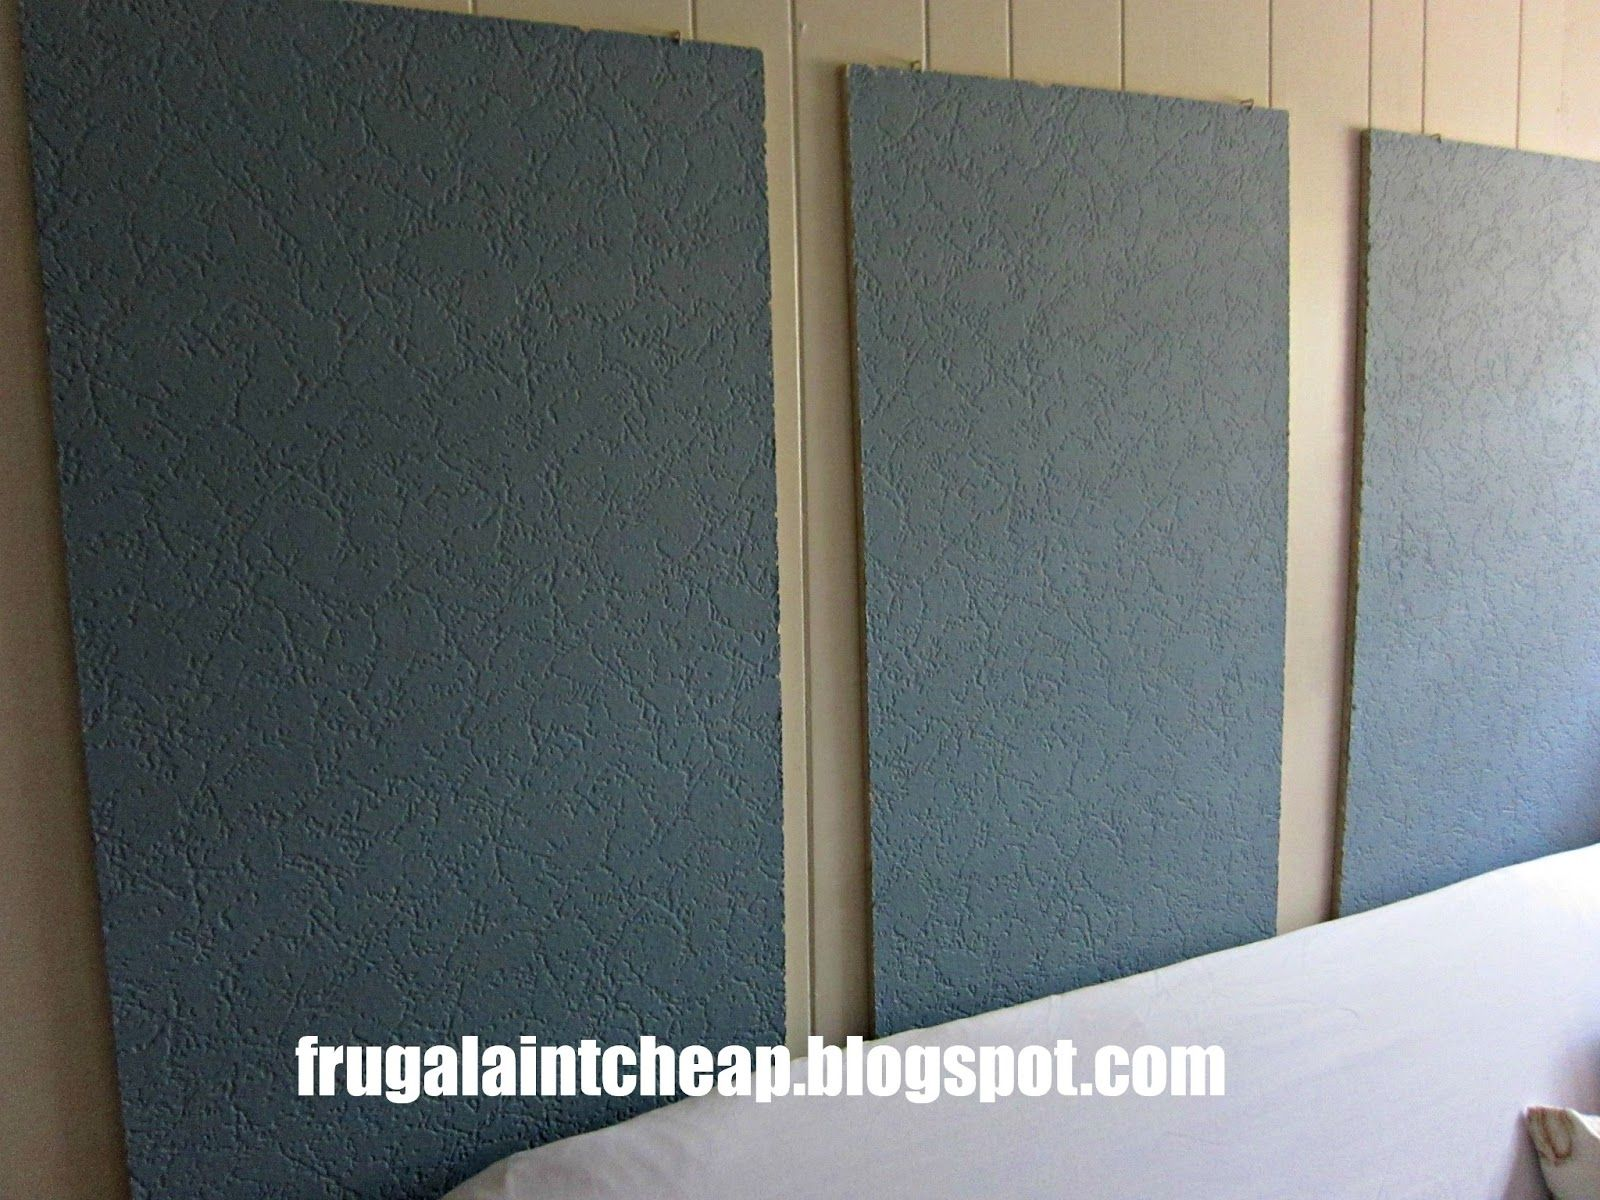 Soundproofing A Room Sound Proofing Soundproof Room Drum Room